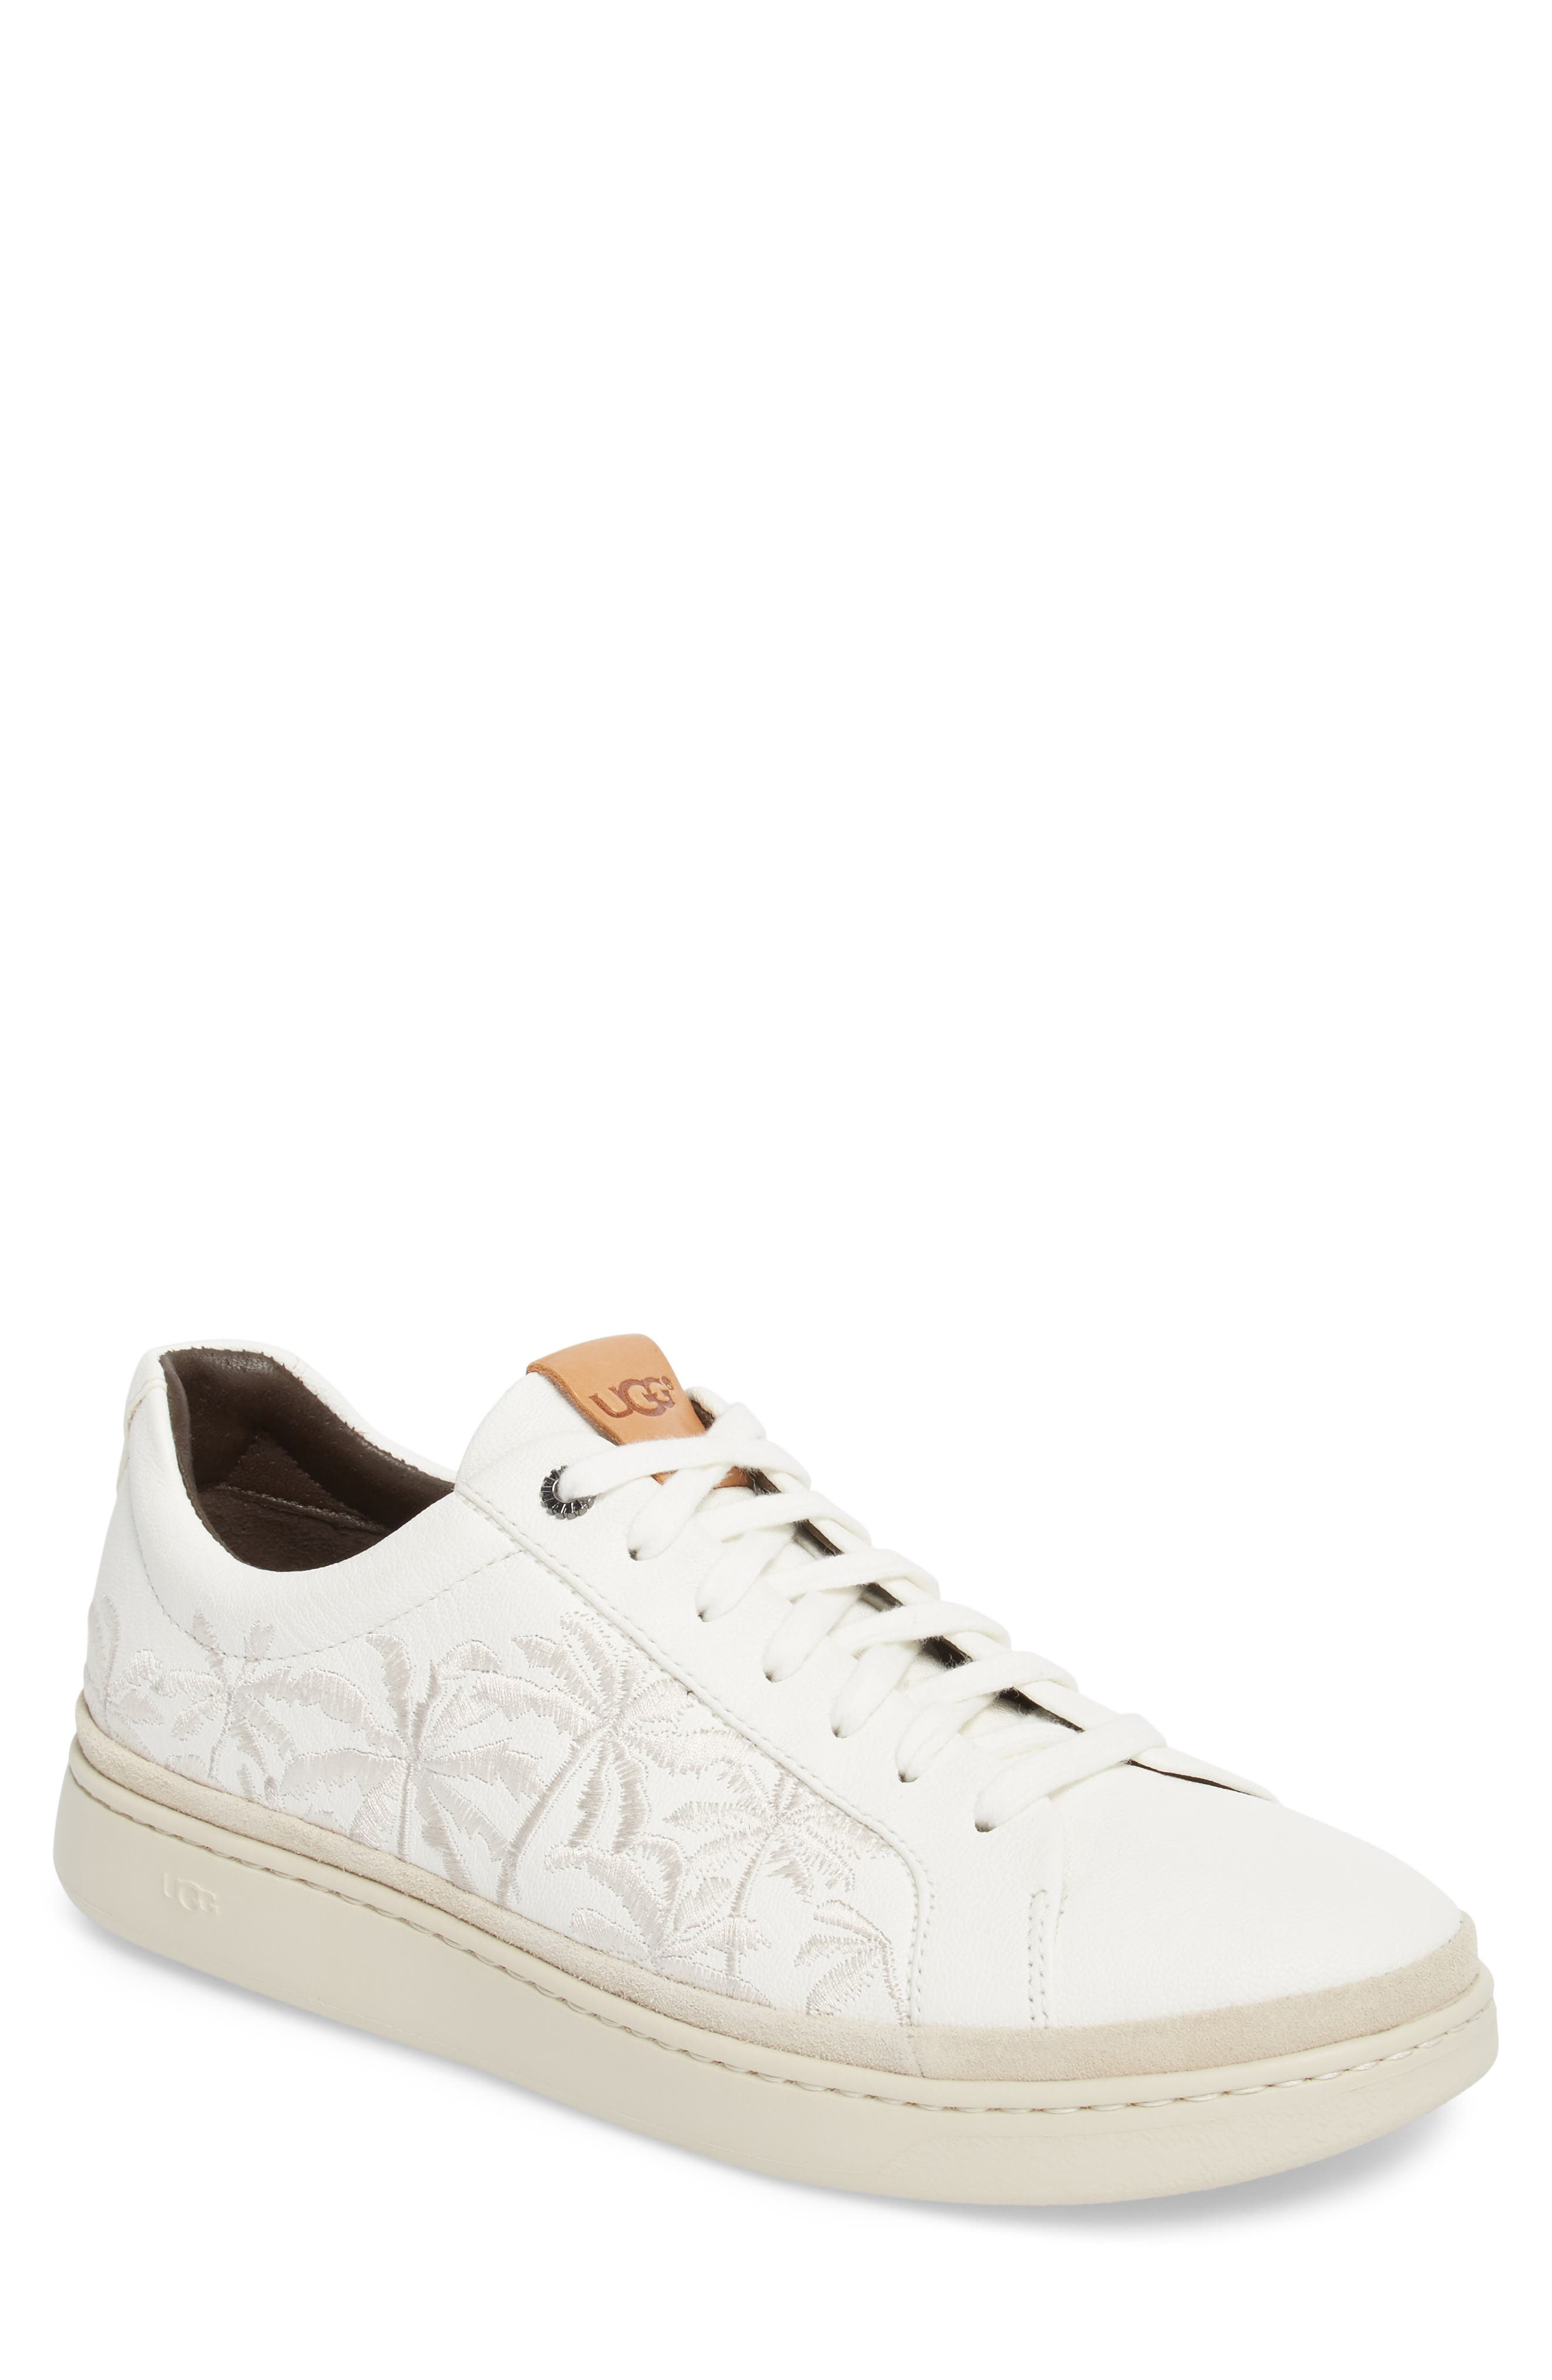 Palm Embroidered Sneaker,                         Main,                         color, 100